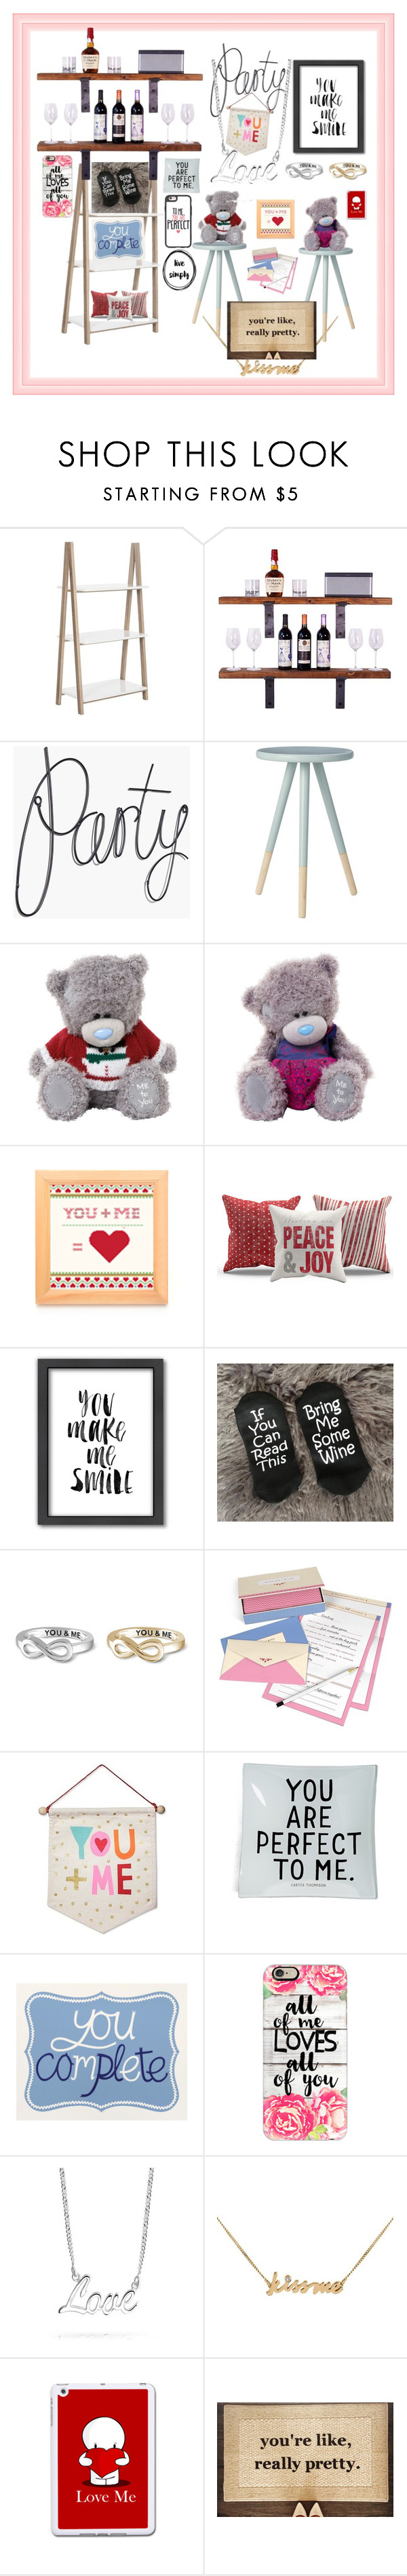 """I Love U ❤️✅"" by donnyprabowo ❤ liked on Polyvore featuring Safavieh, Americanflat, Jewelonfire, Ben's Garden, Hazel Nicholls, Casetify, Bling Jewelry and Lee Renee"